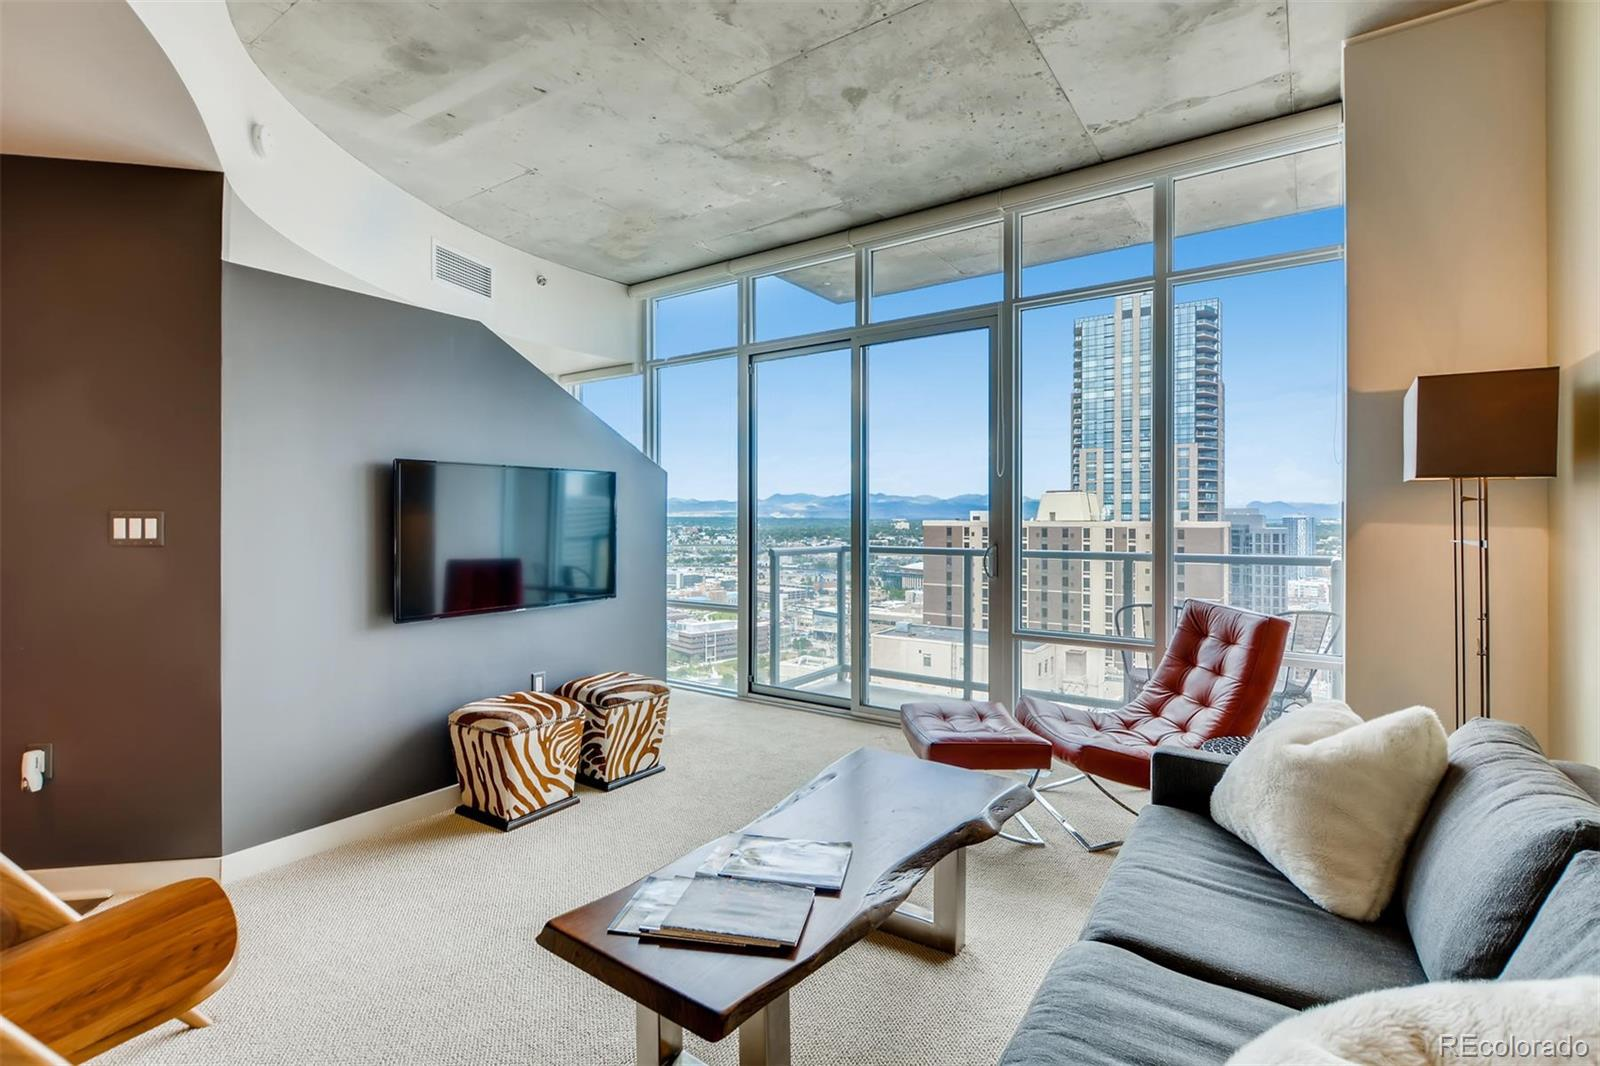 THIS 1-BEDROOM + DEN SPIRE CONDO HAS MIND-BLOWING VIEWS OF DENVER! SPECTACULAR MOUNTAIN VIEWS! AND UNBELIEVABLE CITY VIEWS!! This 30th floor home features dramatic floor-to-ceiling windows, loft-like design, stainless steel appliances, slab granite counters, hardwood floors, newer carpeting, and includes a deeded parking space in the attached garage. Special features include fantastic upgraded lighting, a murphy bed in the den/office, custom closet systems, and lots of storage throughout  Washer/Dryer included. Furnishings are negotiable. SPIRE is LEED-certified, w/40,000 square feet of awesome amenities, including a swimming pool which is heated & open year-round, hot tub, extensive health club, The Zone multimedia lounge, Box Office multimedia theater, outdoor grilling area, 10th floor private event lounge, 24-hour courtesy desk, furnished SPIRE guest suites, modern security & access control systems, and so much more. SPIRE Denver has fast internet coming soon-1 gig dedicated to each condo. Fastest downtown! Very well-maintained building! SPIRE is in the heart of it all. Conveniently located at 14th Street & Champa Street, you can walk or grab the free shuttle to Larimer Street restaurants, downtown's night life, the Colorado Convention Center, Denver Center for the Performing Arts, Denver Pavilions, Coors Field, Whole Foods Market, the emergent Union Station neighborhood and the A-Line train to Denver International Airport. Come home to Downtown Denver's SPIRE -- life is better here!